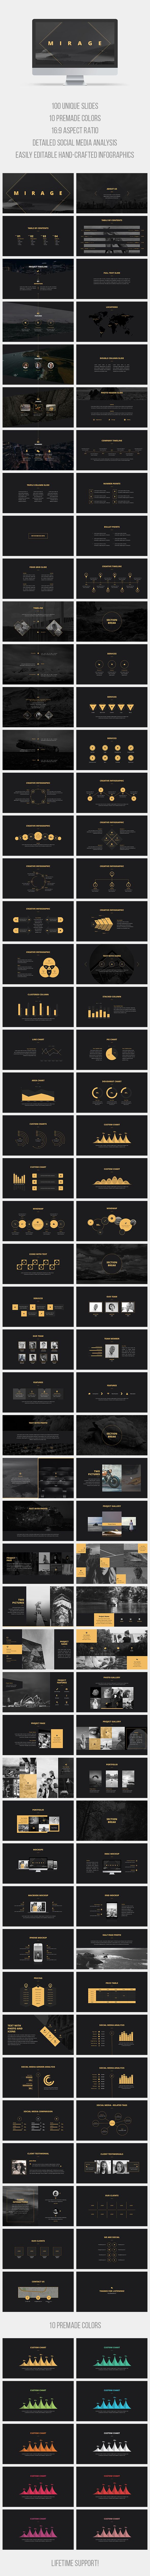 Mirage PowerPoint Template - PowerPoint Templates #Presentation #Templates Download here: https://graphicriver.net/item/mirage-powerpoint-template/17134299?ref=alena994